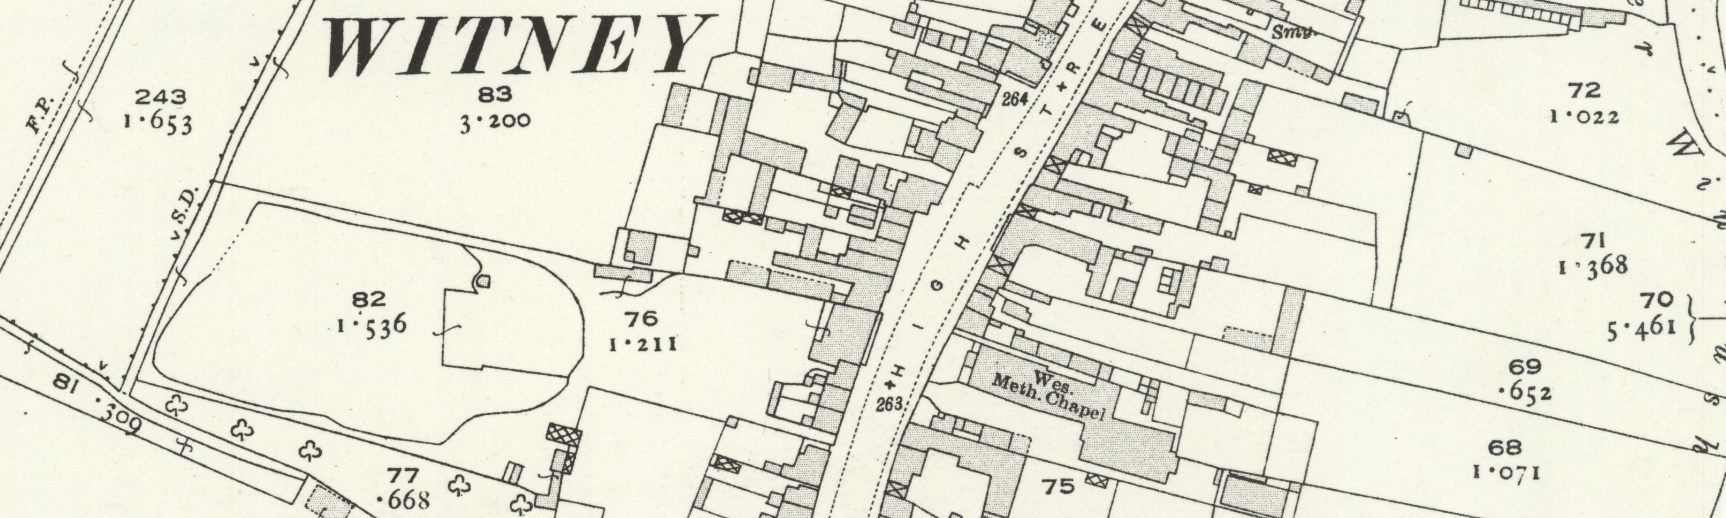 The High Street Witney in Witney c1919. No. 46 is the building north of the Wes. Meth. Chapel.